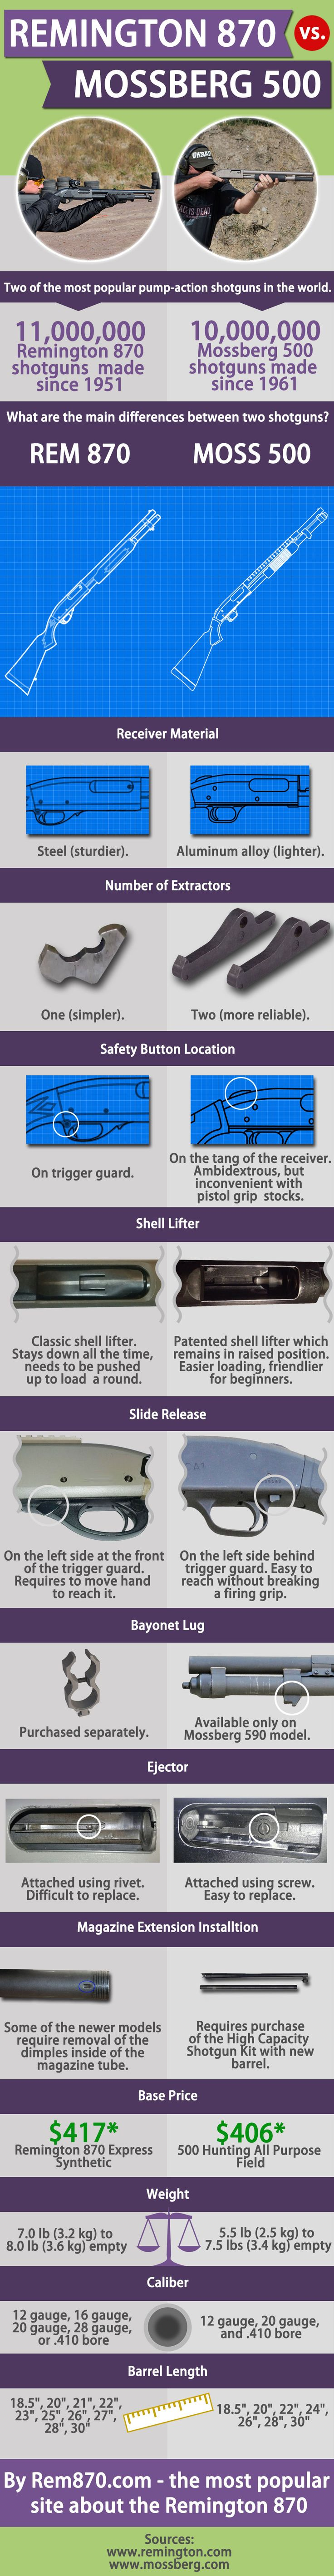 Differences between the Remington 870 and Mossberg 500 shotguns